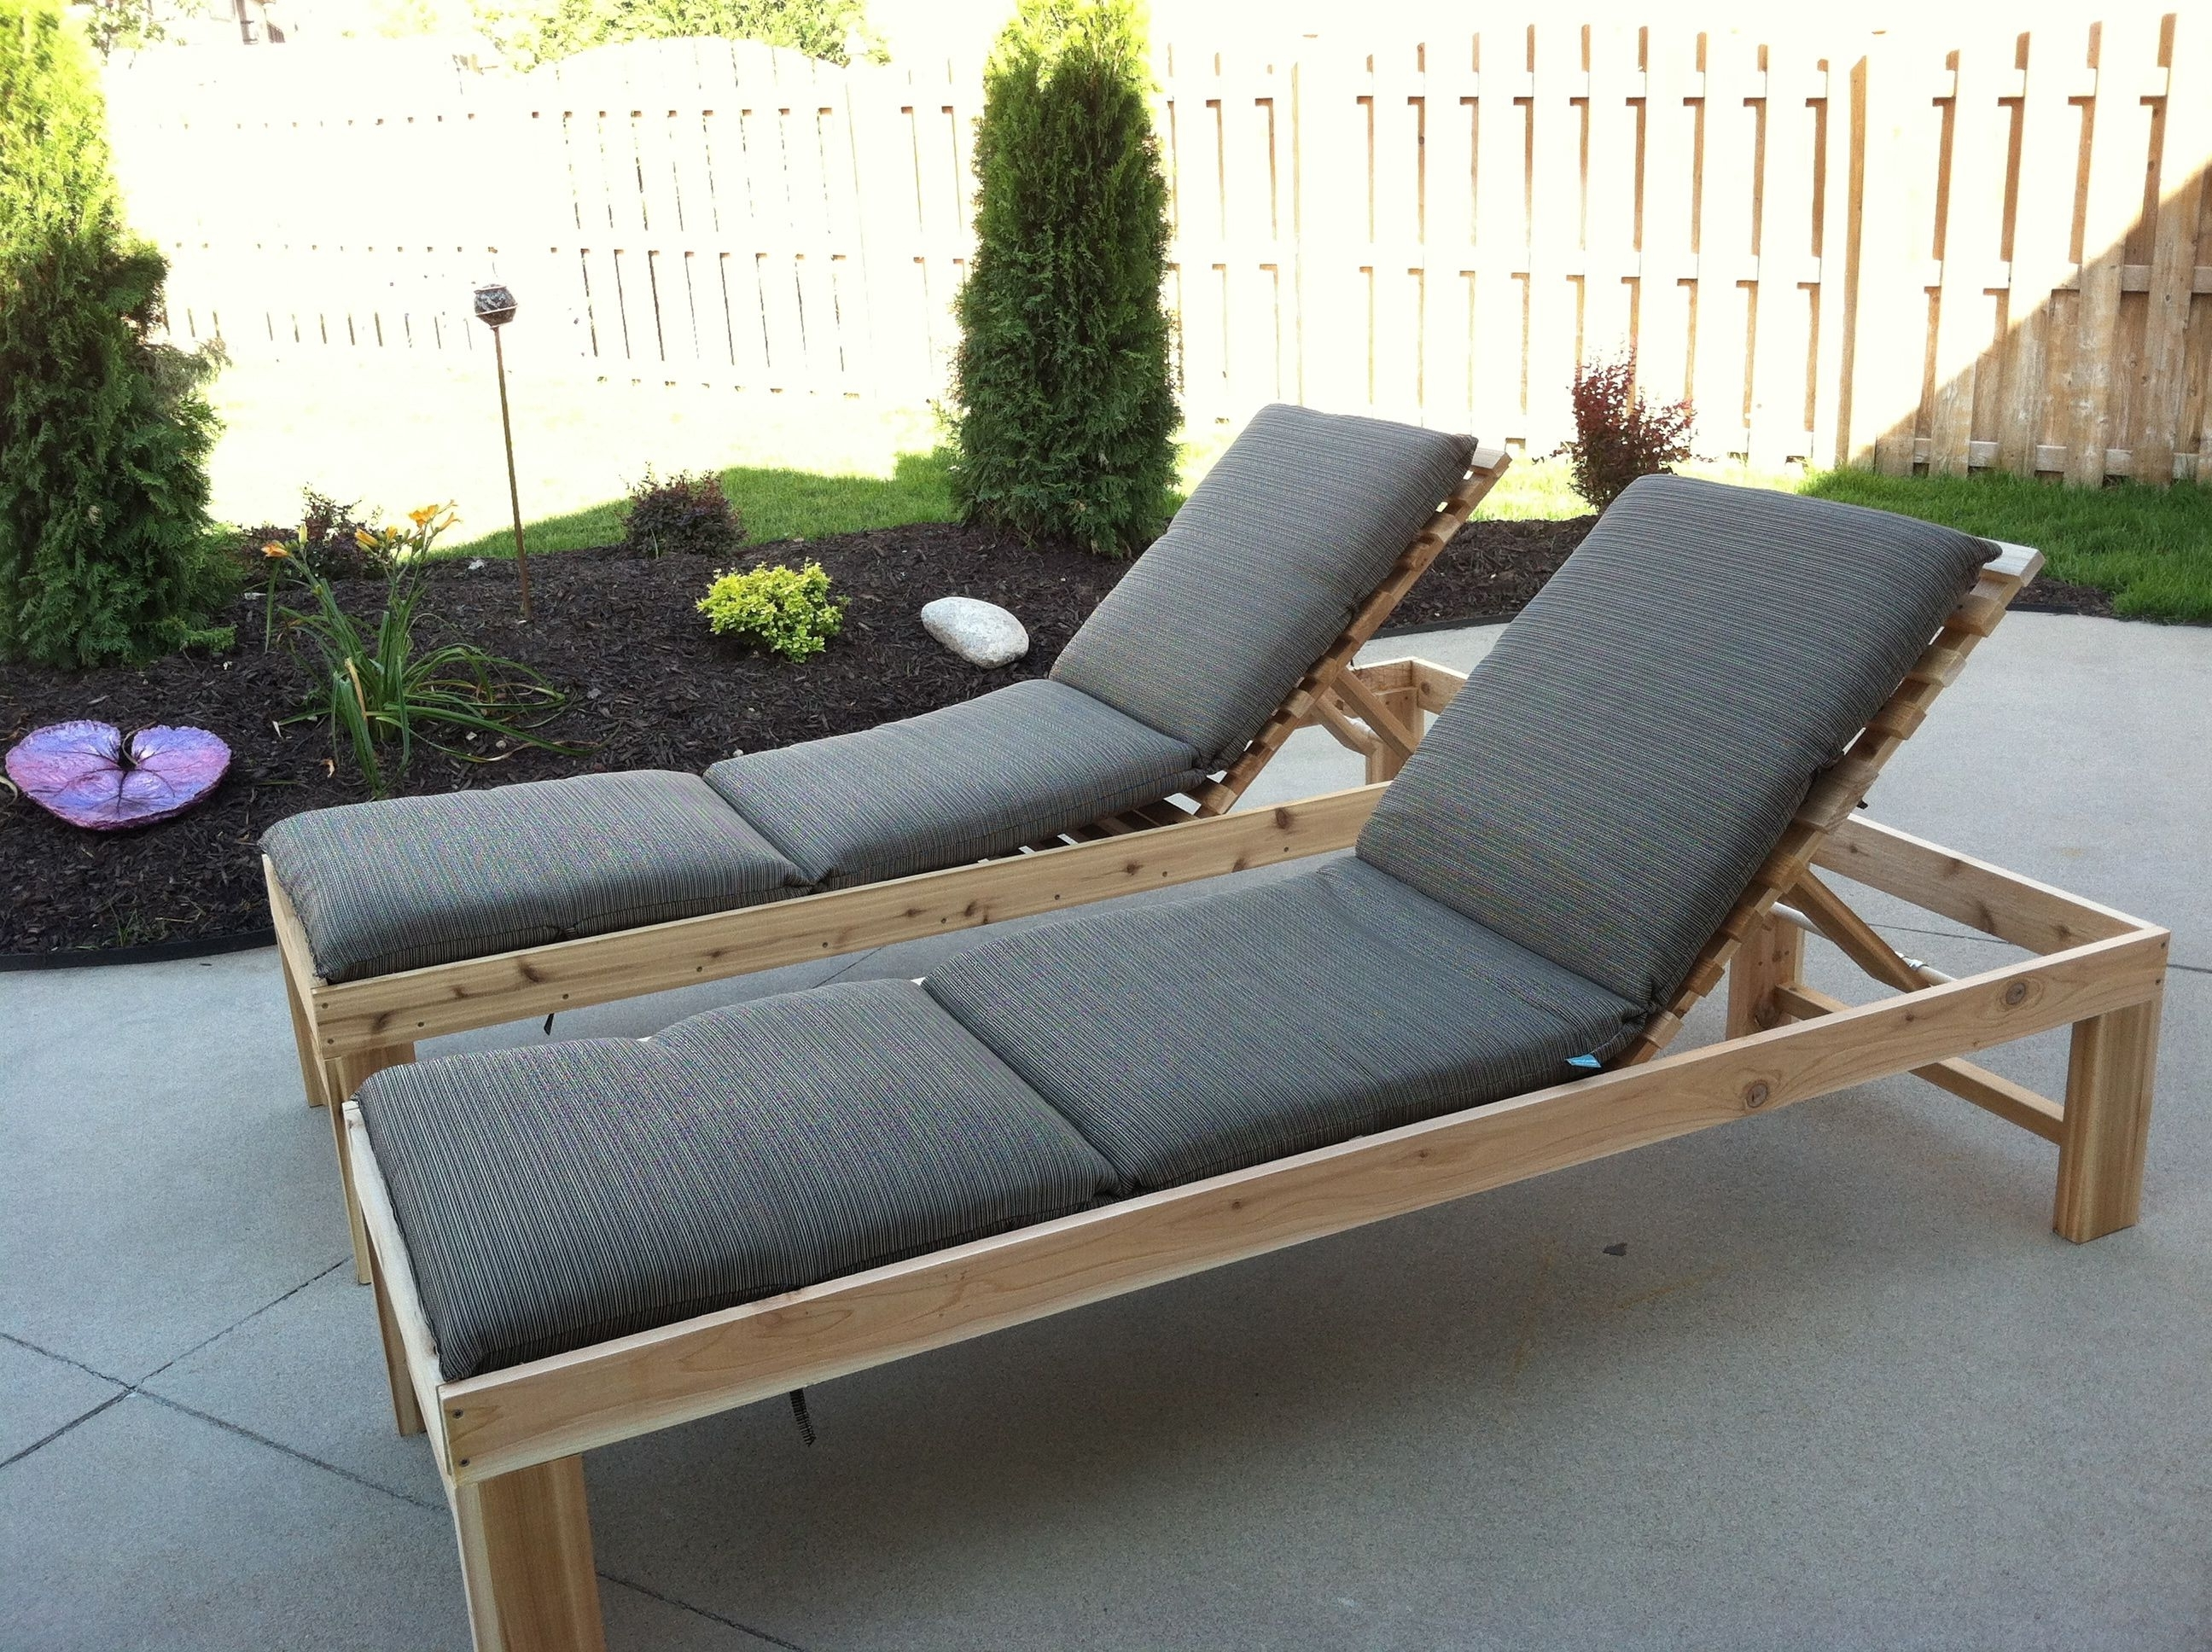 Comfortable Outdoor Chaise Lounge Chairs Intended For Famous Outdoor Chaise Lounge With Ergonomic Seating Settings – Traba Homes (View 6 of 15)